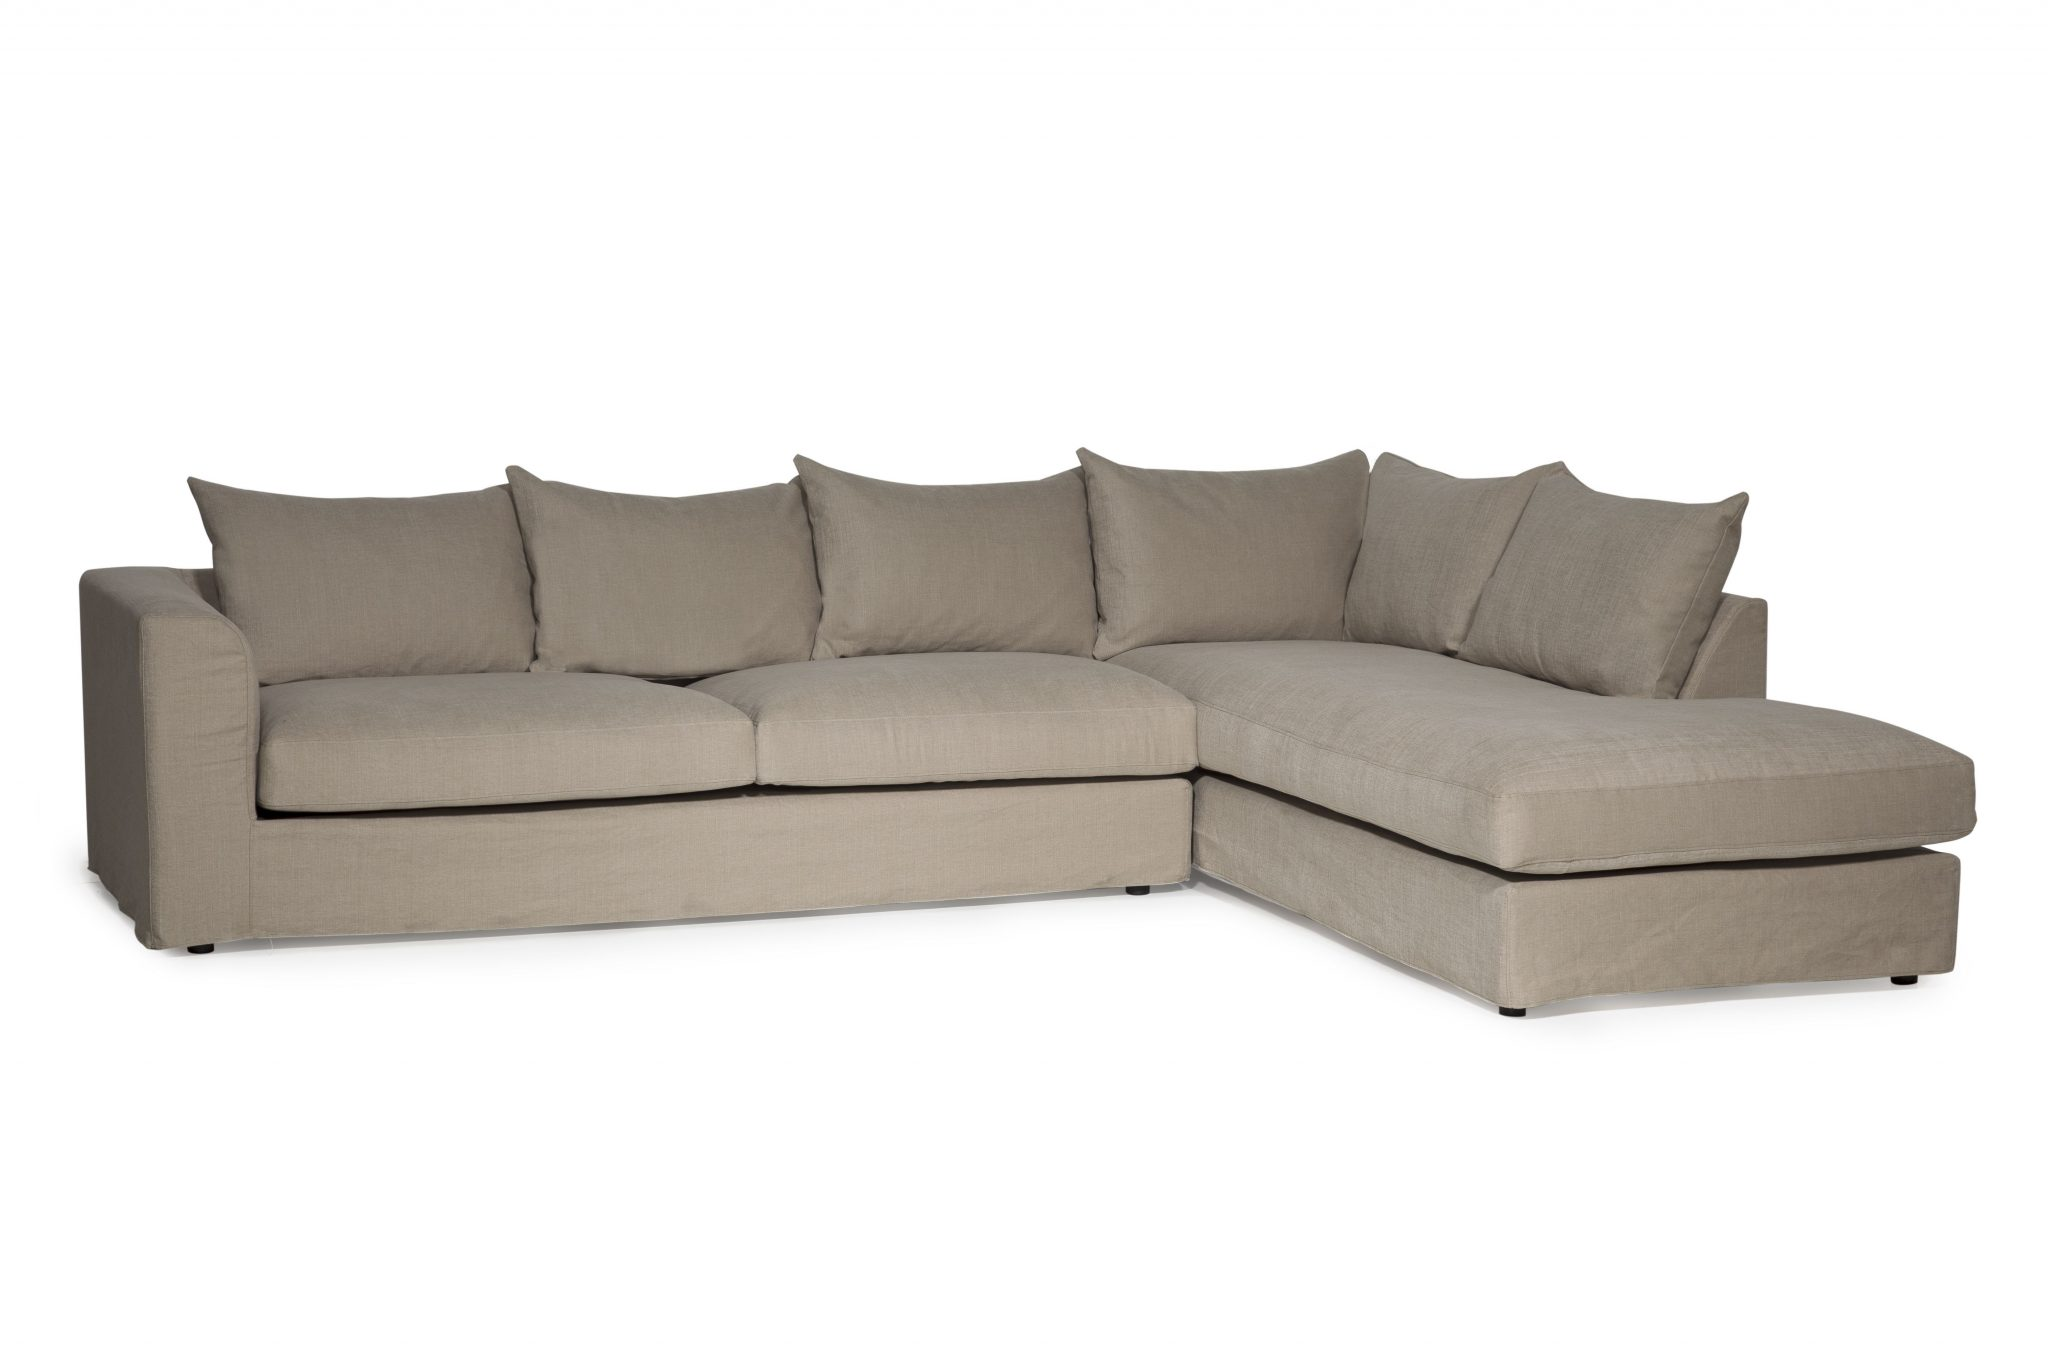 Sofa Portland Portland Sofa Norwalk Furniture Thesofa